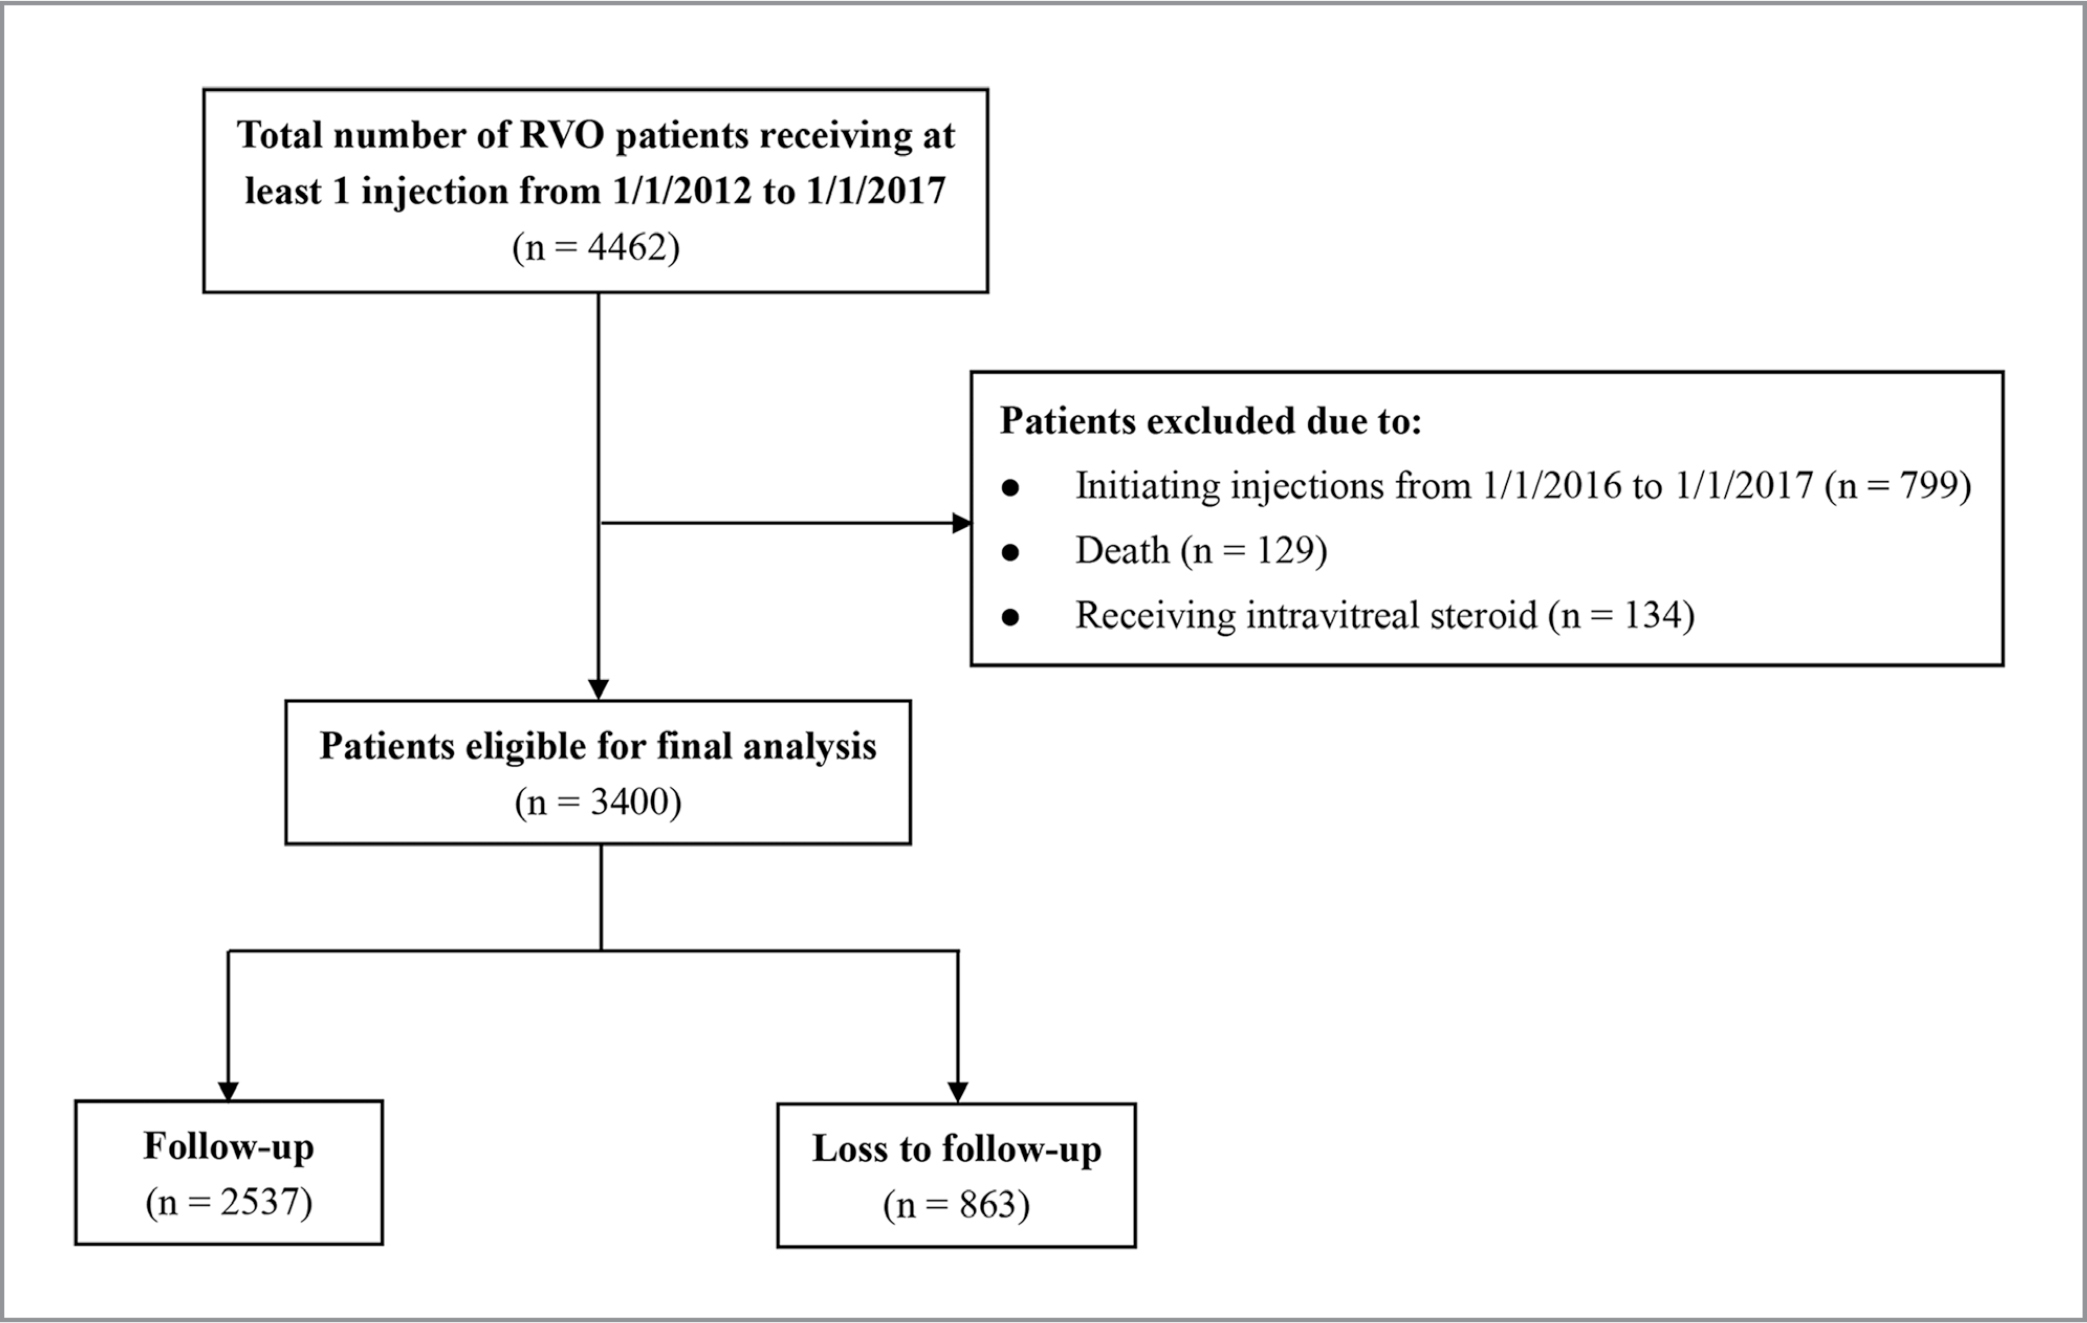 Flowchart for inclusion of patients with retinal vein occlusion (RVO) in final analysis. A total of 3,400 patients with macular edema due to RVO receiving intravitreal anti-vascular endothelial growth factor injections were eligible for final analysis after the application of the inclusion and exclusion criteria.